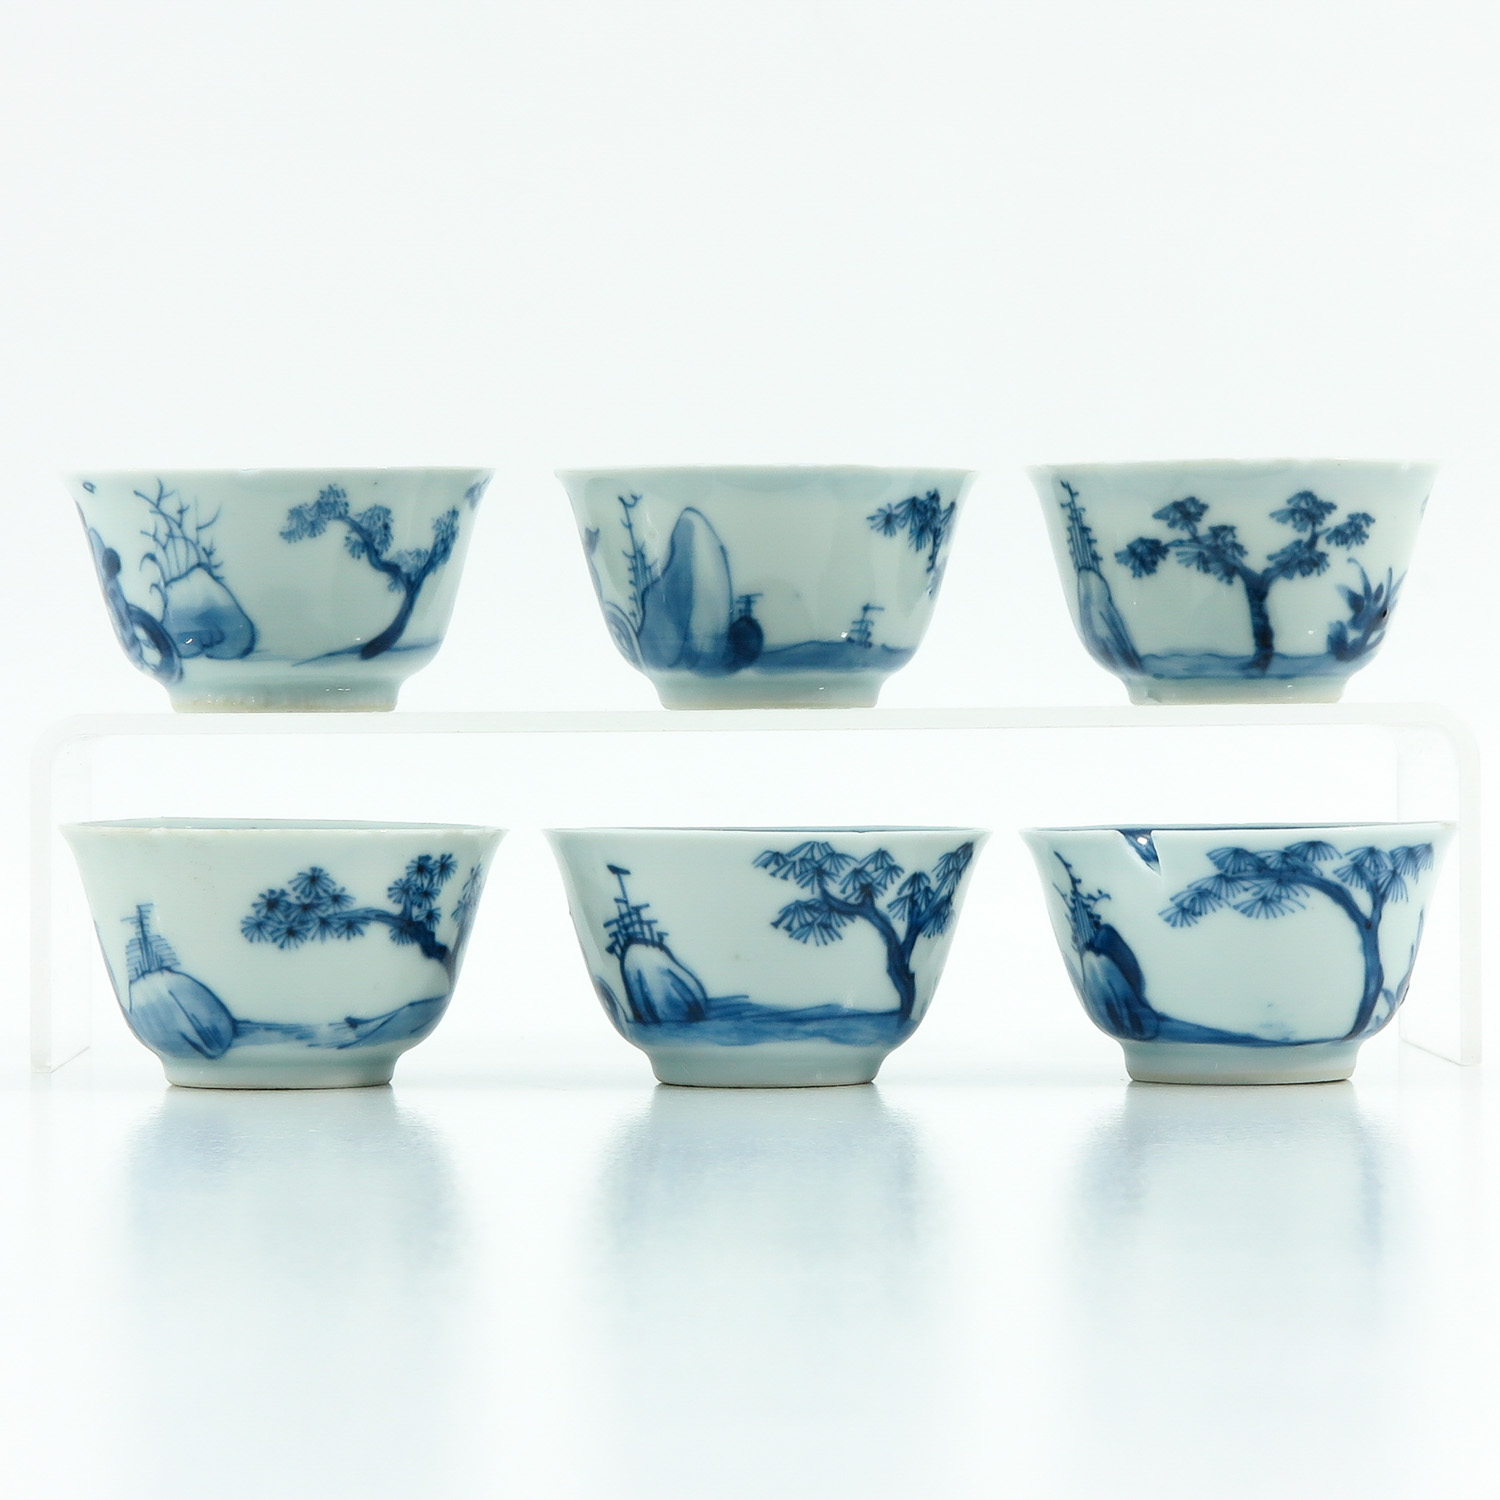 A Series of 6 Blue and White Cups - Image 2 of 9